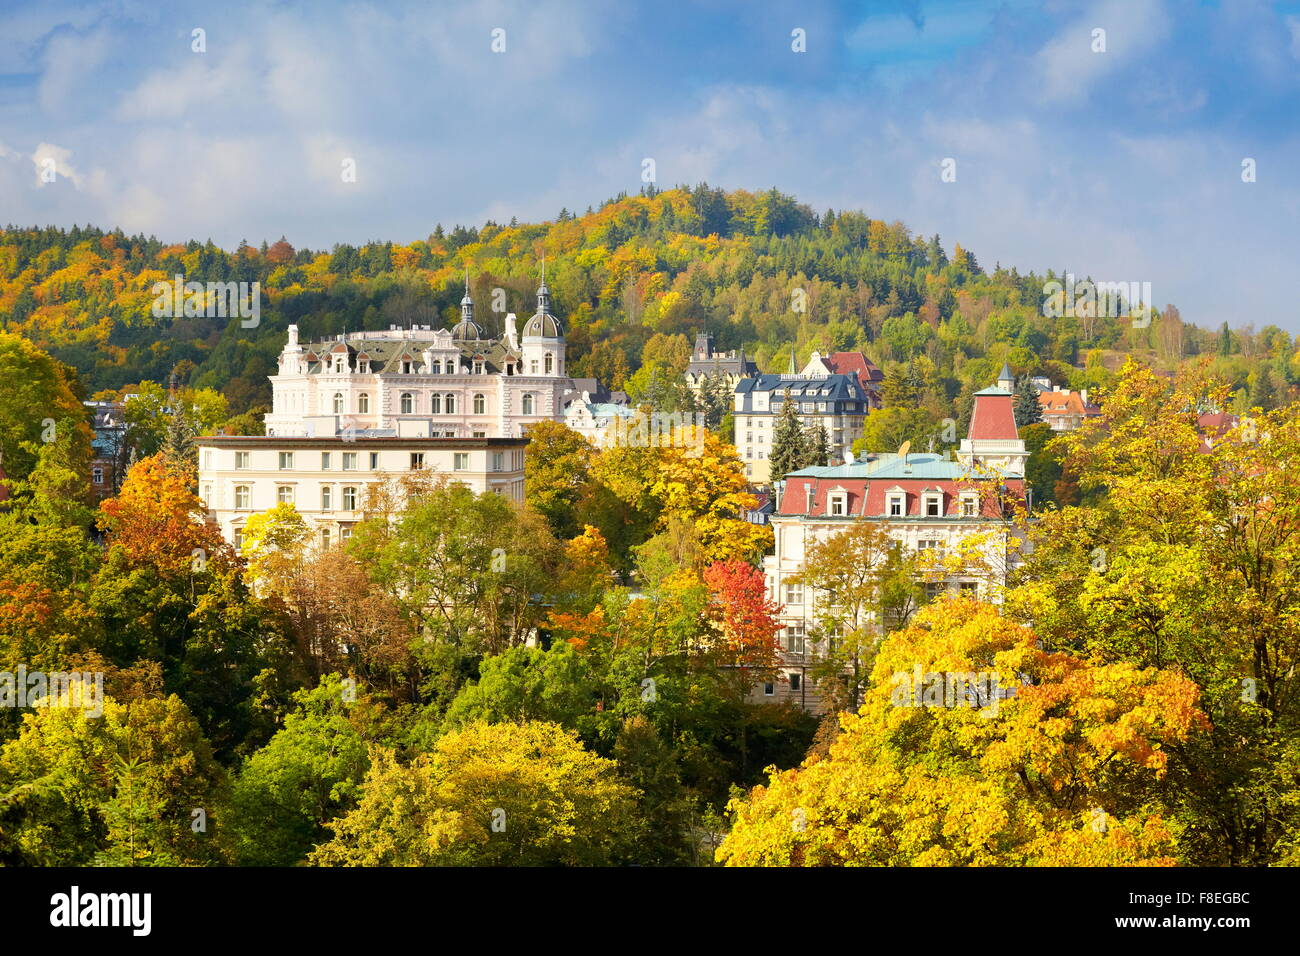 Karlovy Vary Spa, Bohemia, Czech Republic, Europe - Stock Image